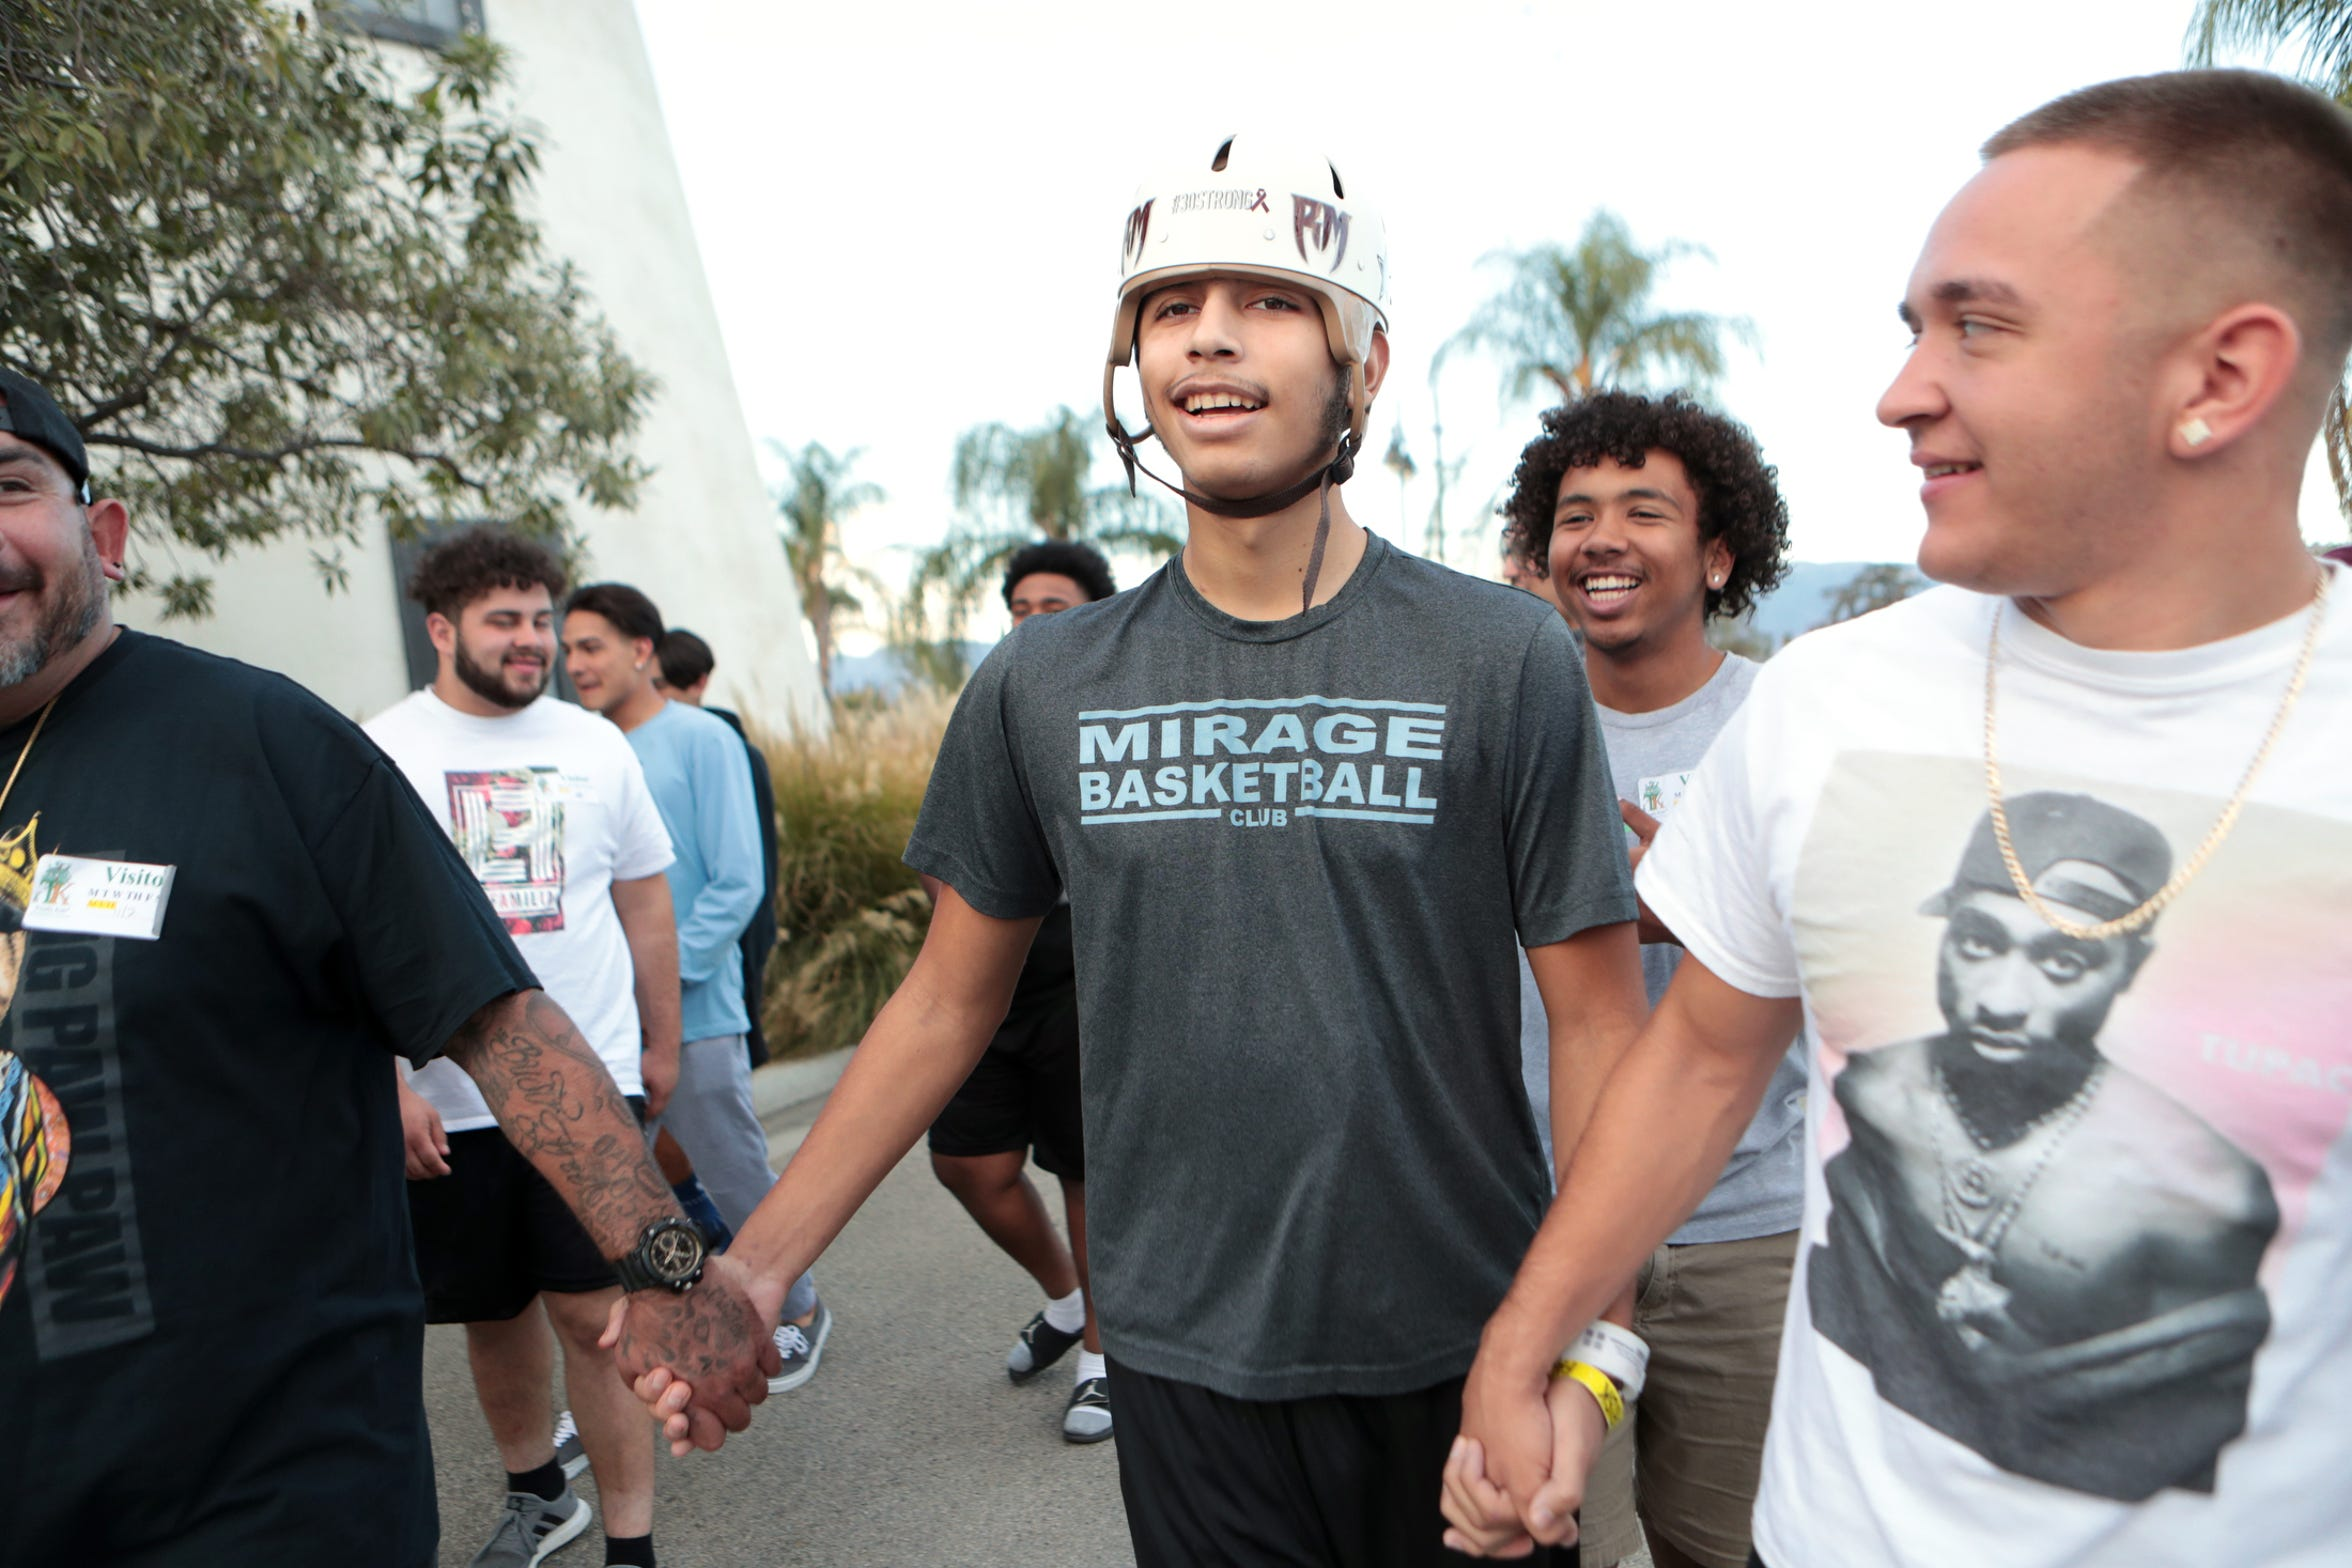 Izzy Ramirez, center, grips the hand of his brother Jessie Alvarez, left, and Joshua Davidson while walking with his Rancho Mirage High School friends and football teammates outside the Totally Kids Rehabilitation Hospital in Loma Linda, Calif., on Saturday, Nov. 2, 2019. Ramirez had a cerebral AVM rupture on Sept. 27, 2019.